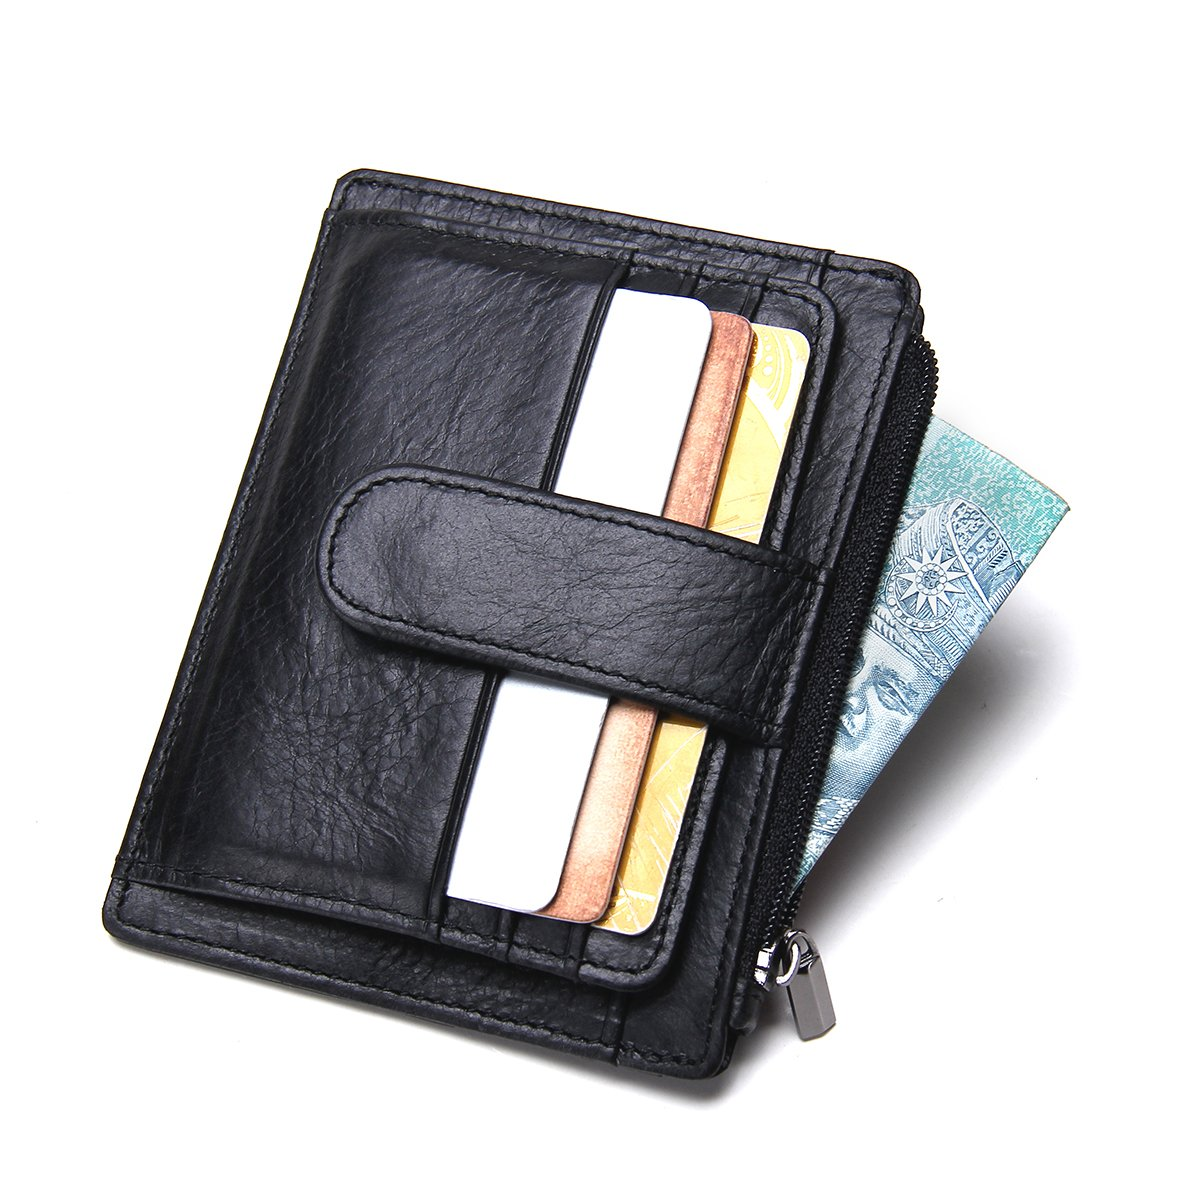 Contacts Mens Genuine Leather Mini Thin Slim Money Clip Card Coin Purse Wallet Black 1007